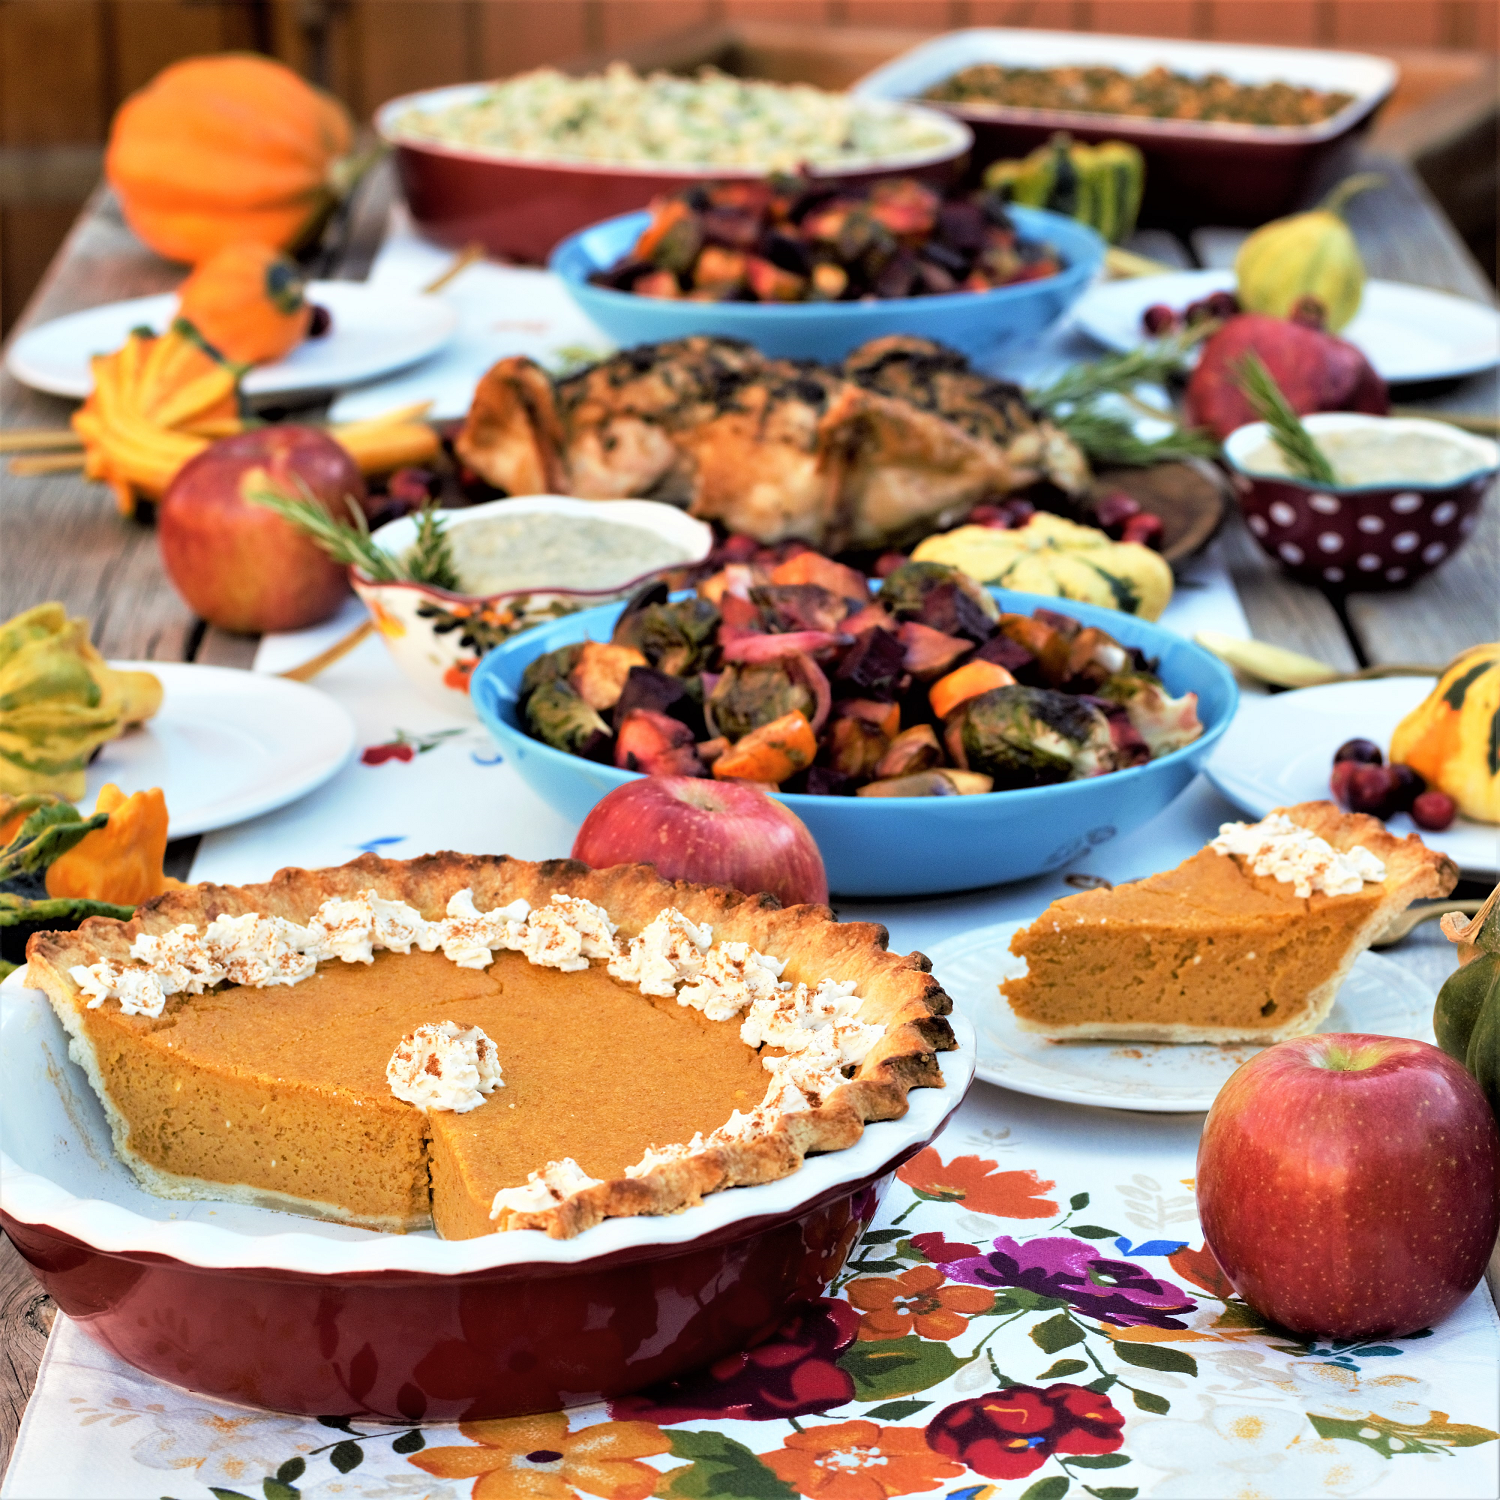 All-in-one guide for hosting a Friendsgiving feast: perfectly roasted chicken, garlic parmesan mashed potatoes, maple balsamic roasted veggies, & bourbon pumpkin pie!